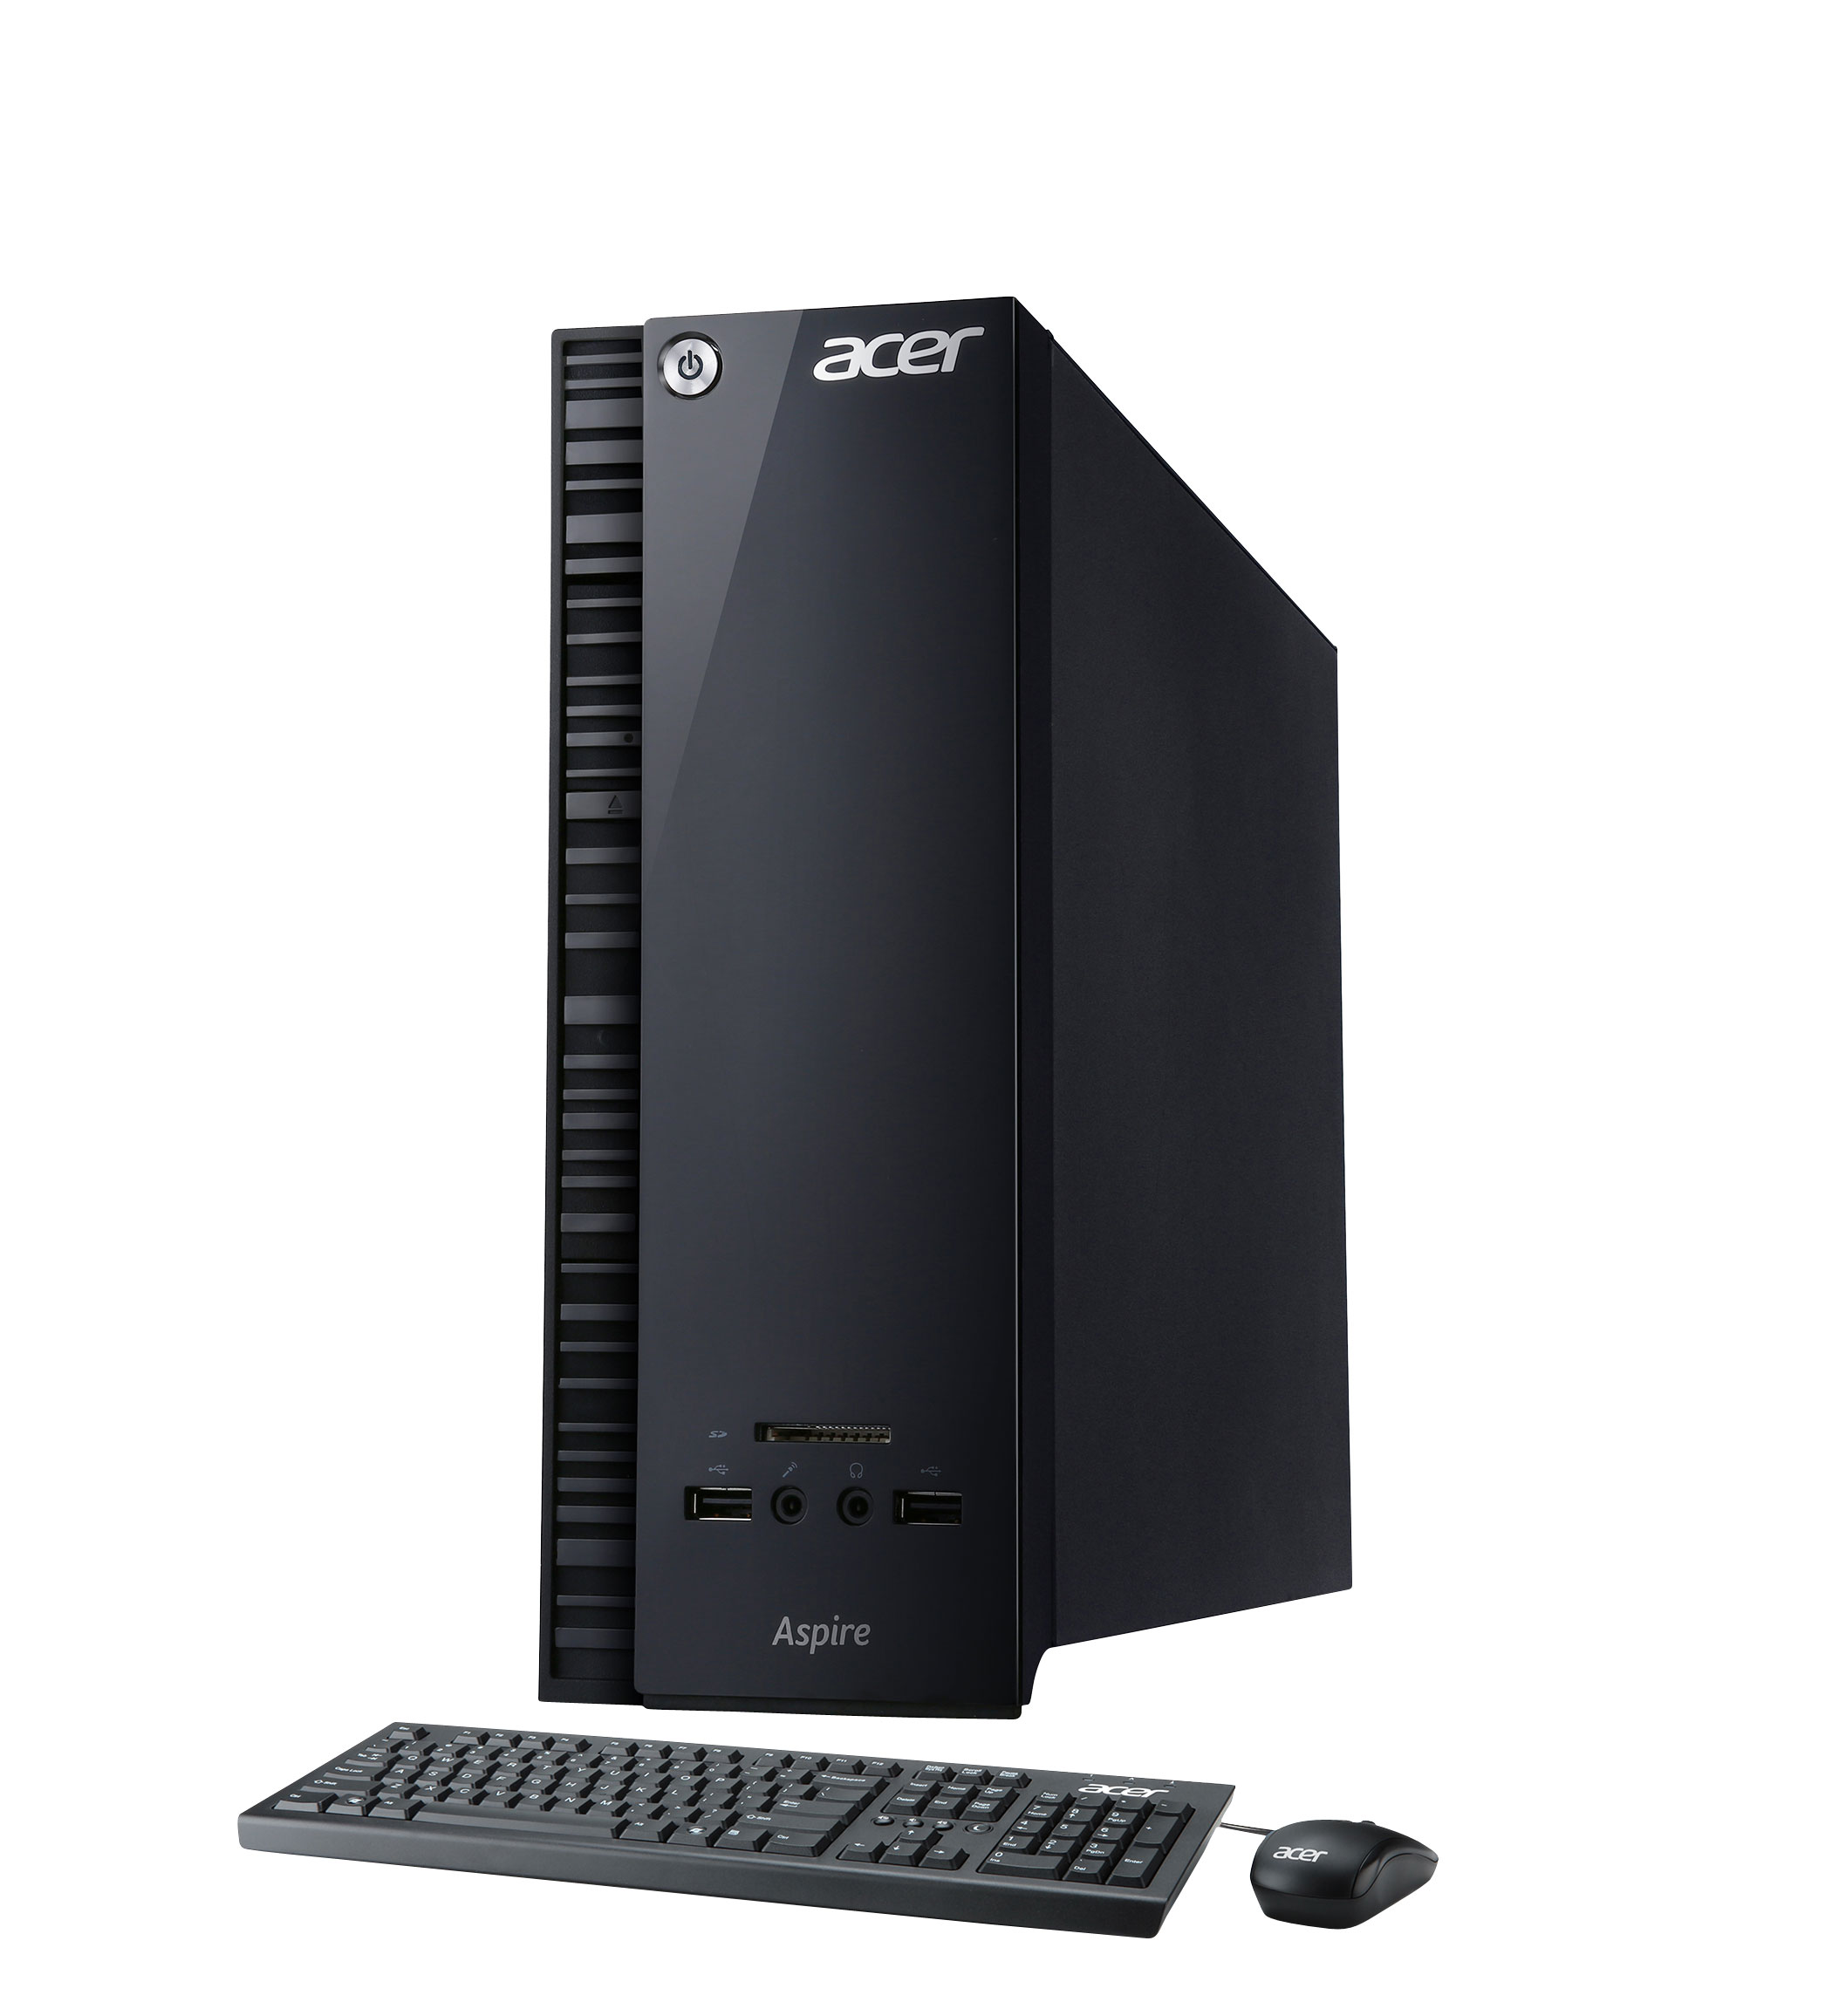 Acer XC704 DTB40EK008 Intel Celeron 8GB RAM 1TB HDD Desktop Unit